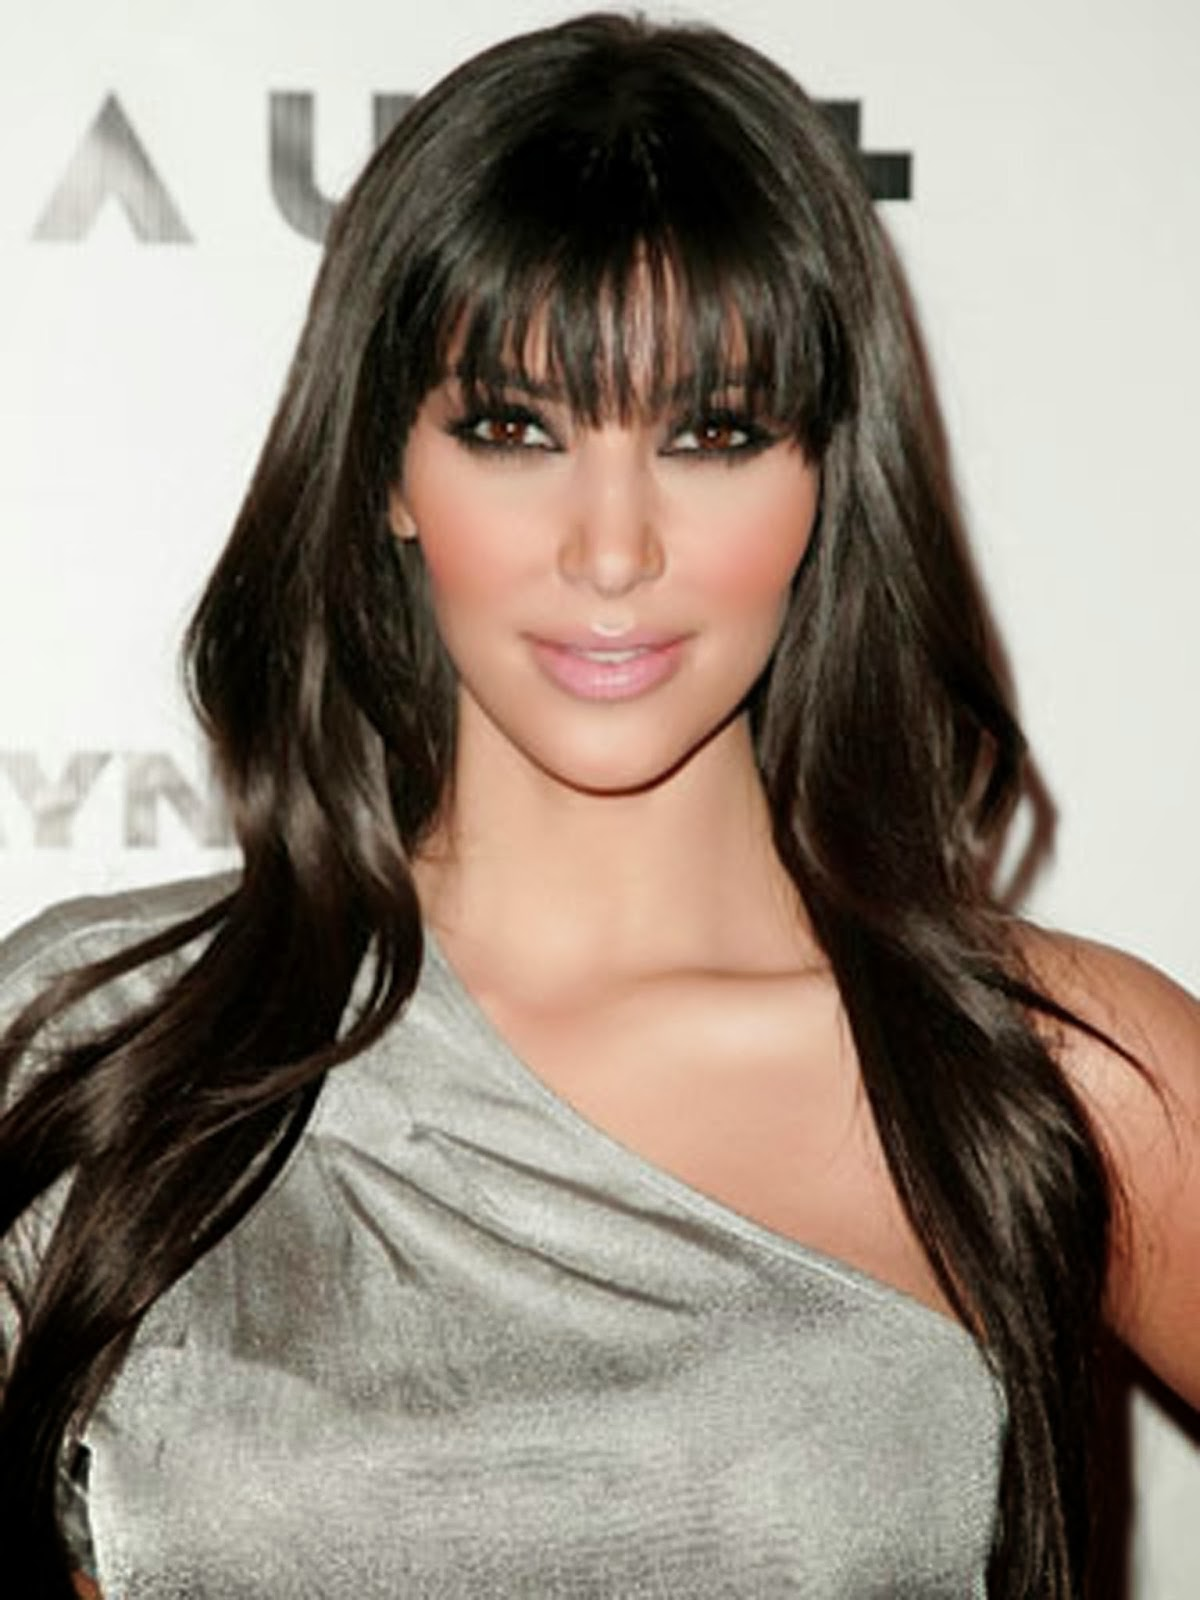 47 of the Hottest Celebrity Hairstyles Ever - Hairstyles ...